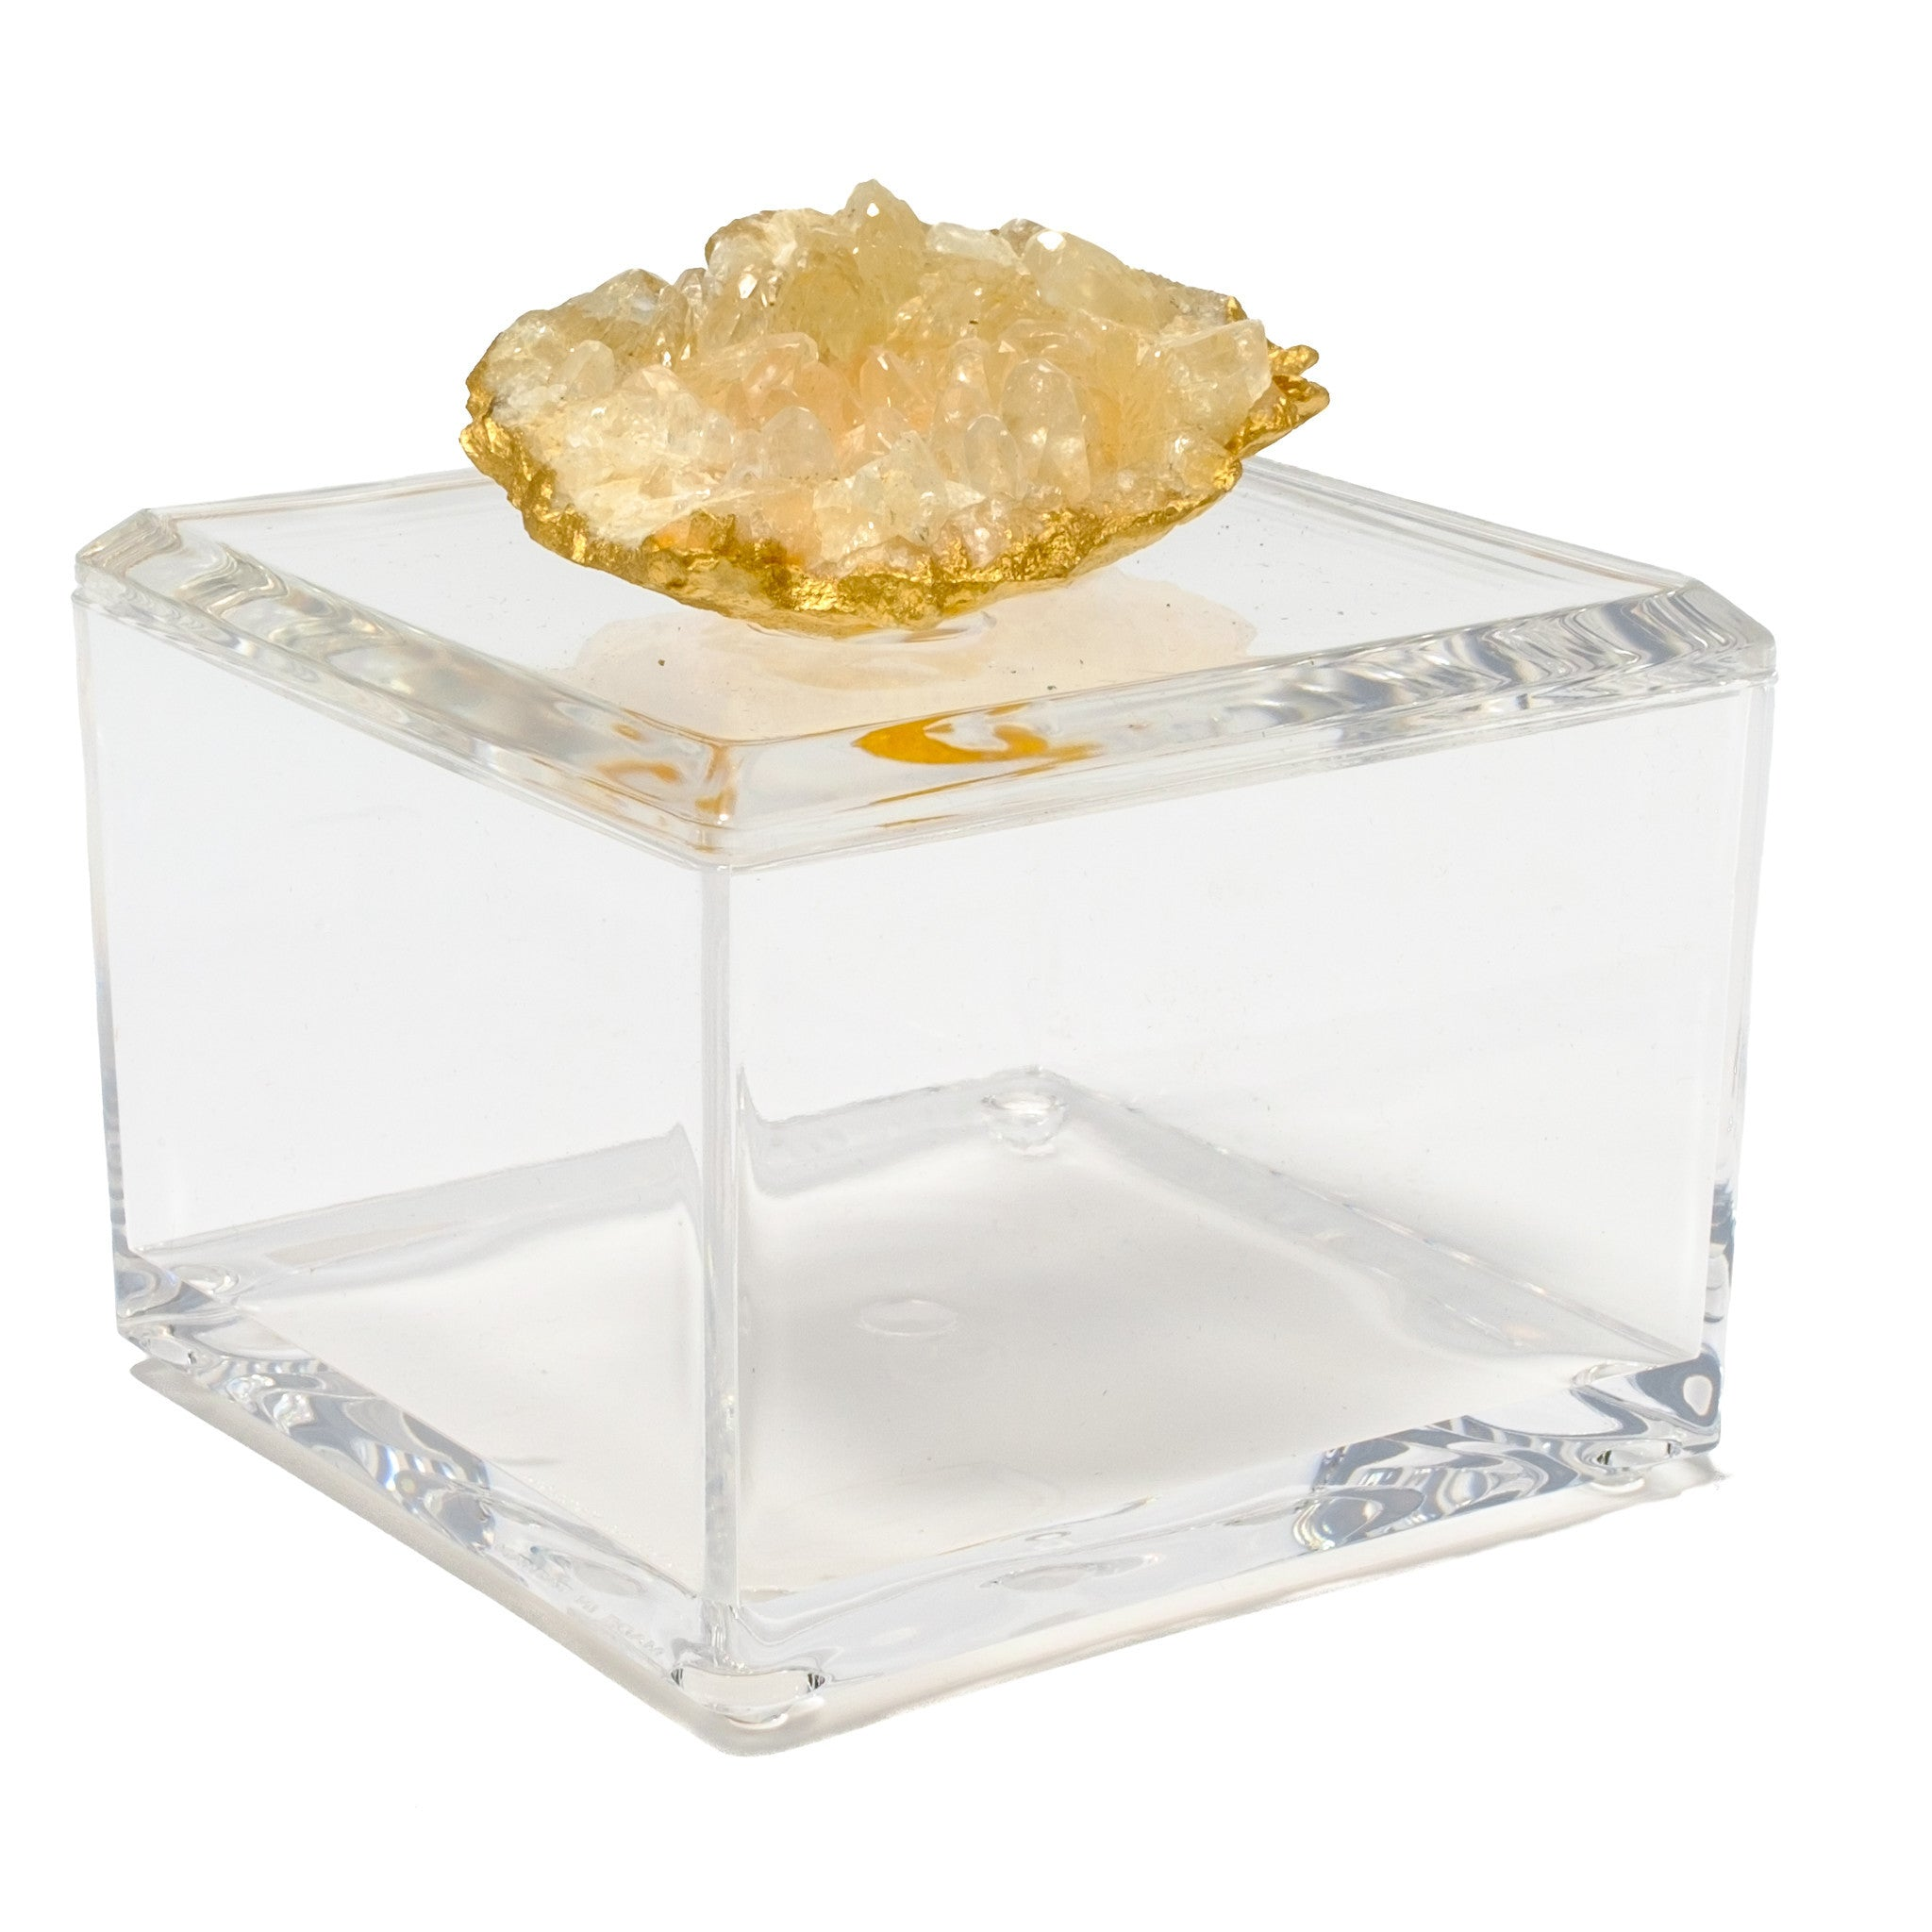 Small Acrylic Box w/ Calcite Crystals